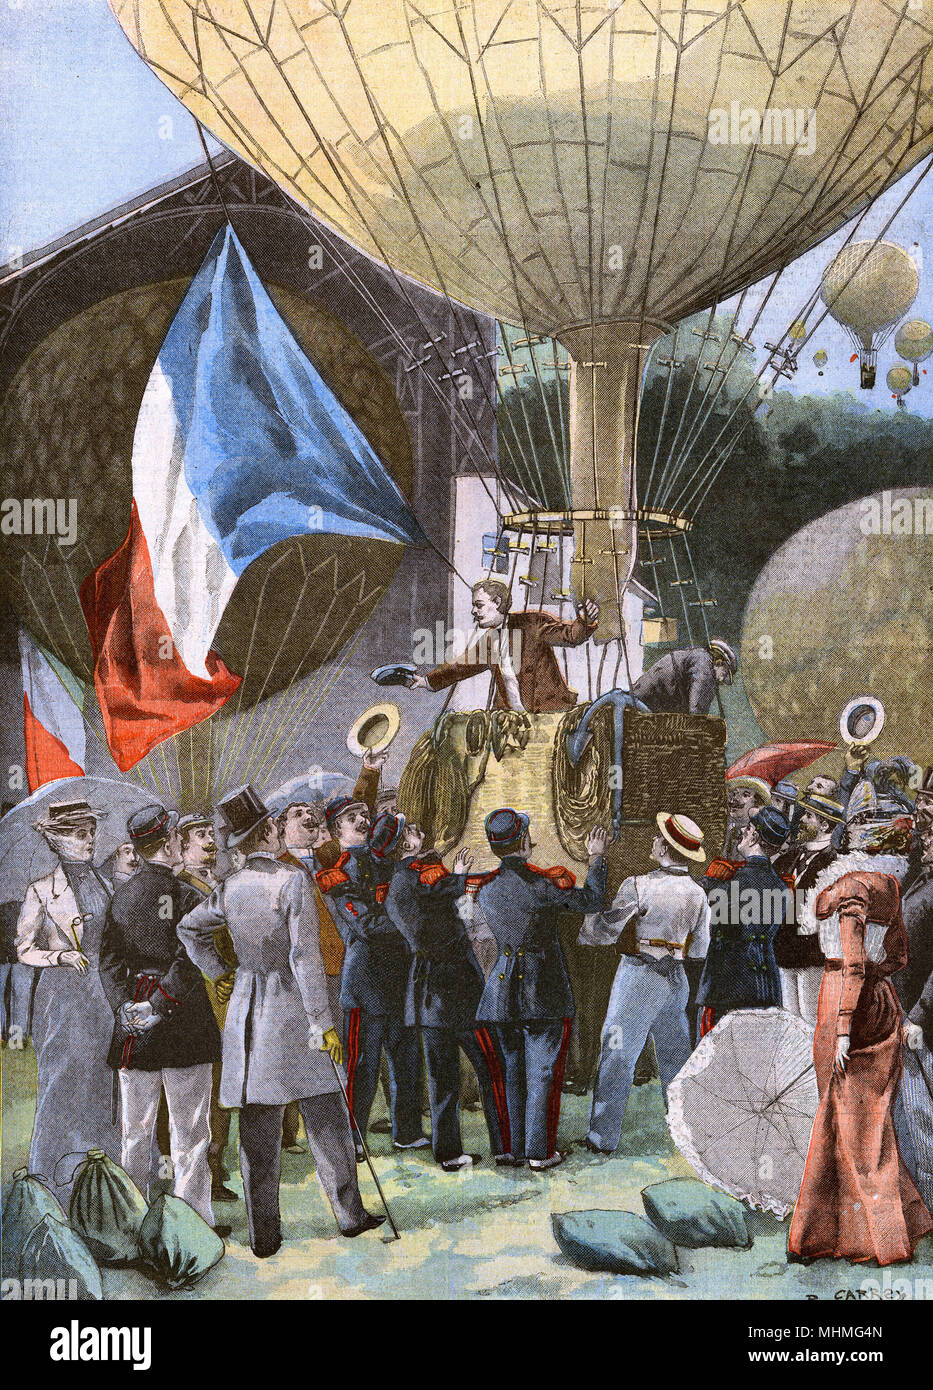 A balloon rally at Vincennes, on the outskirts of Paris.       Date: 1900 - Stock Image